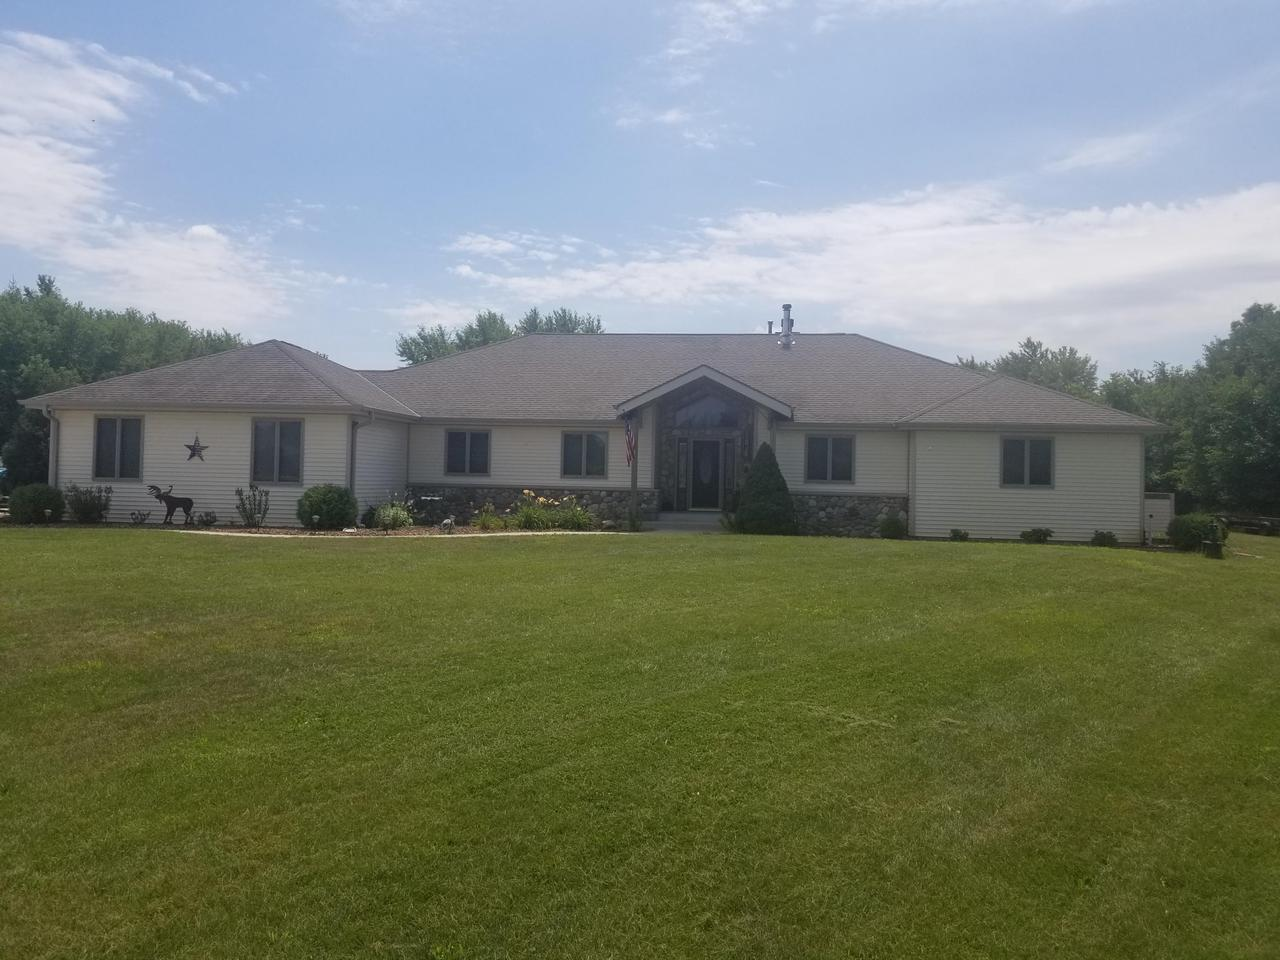 S21W37715 Becker Ct COURT, DOUSMAN, WI 53118